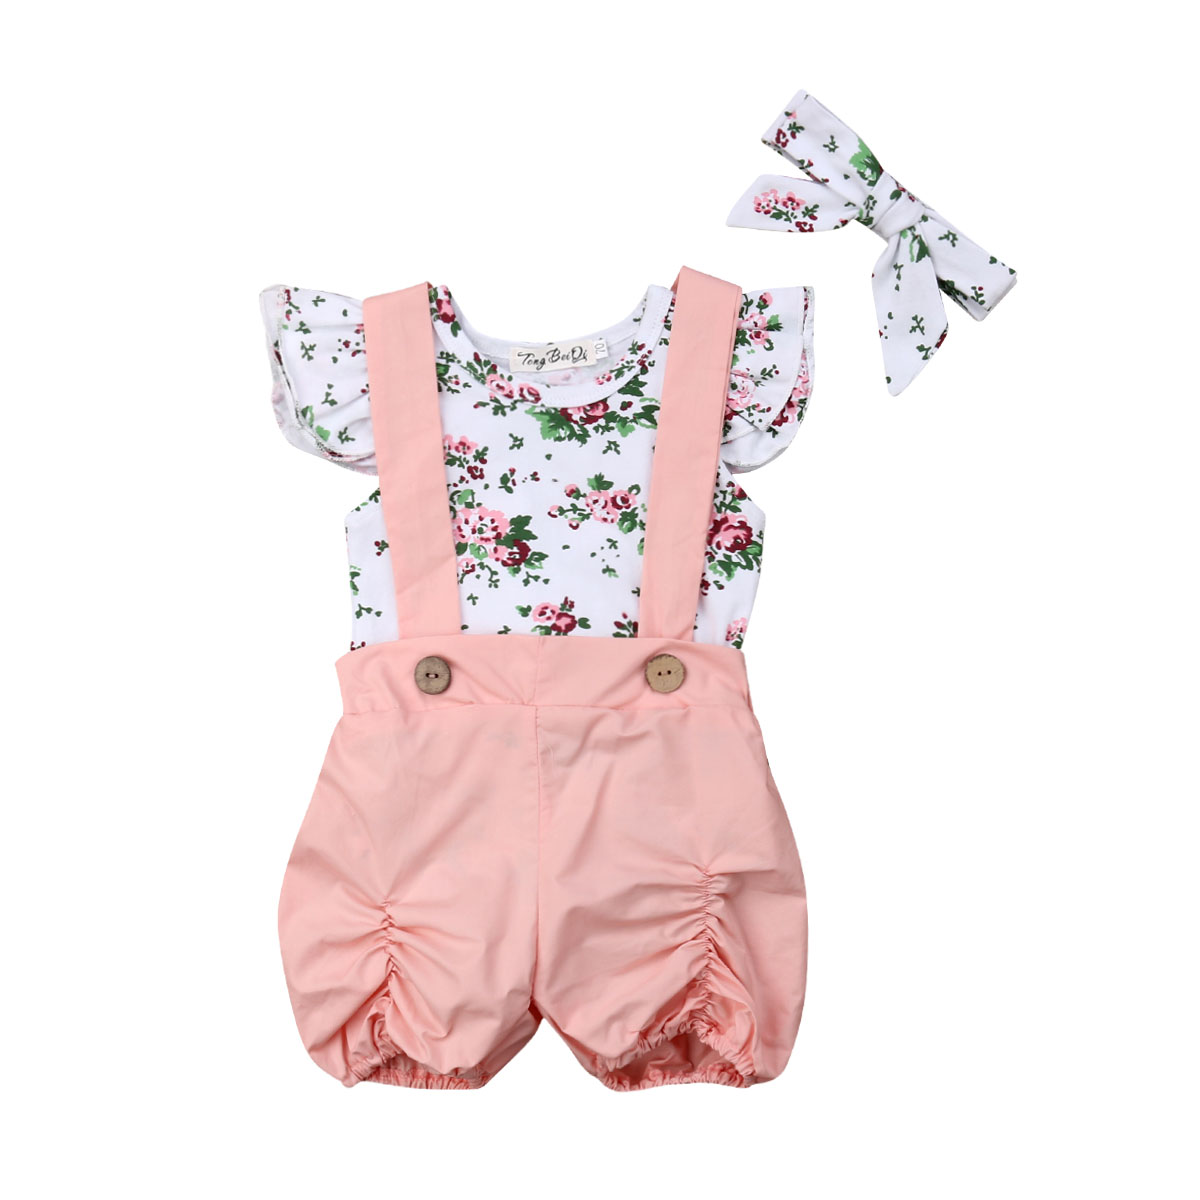 Imcute Brand 2020 3PCS Toddler Baby Girl Summer Clothes Infant Floral Tops Bodysuit Bib Shorts Overalls Outfit Baby Clothing